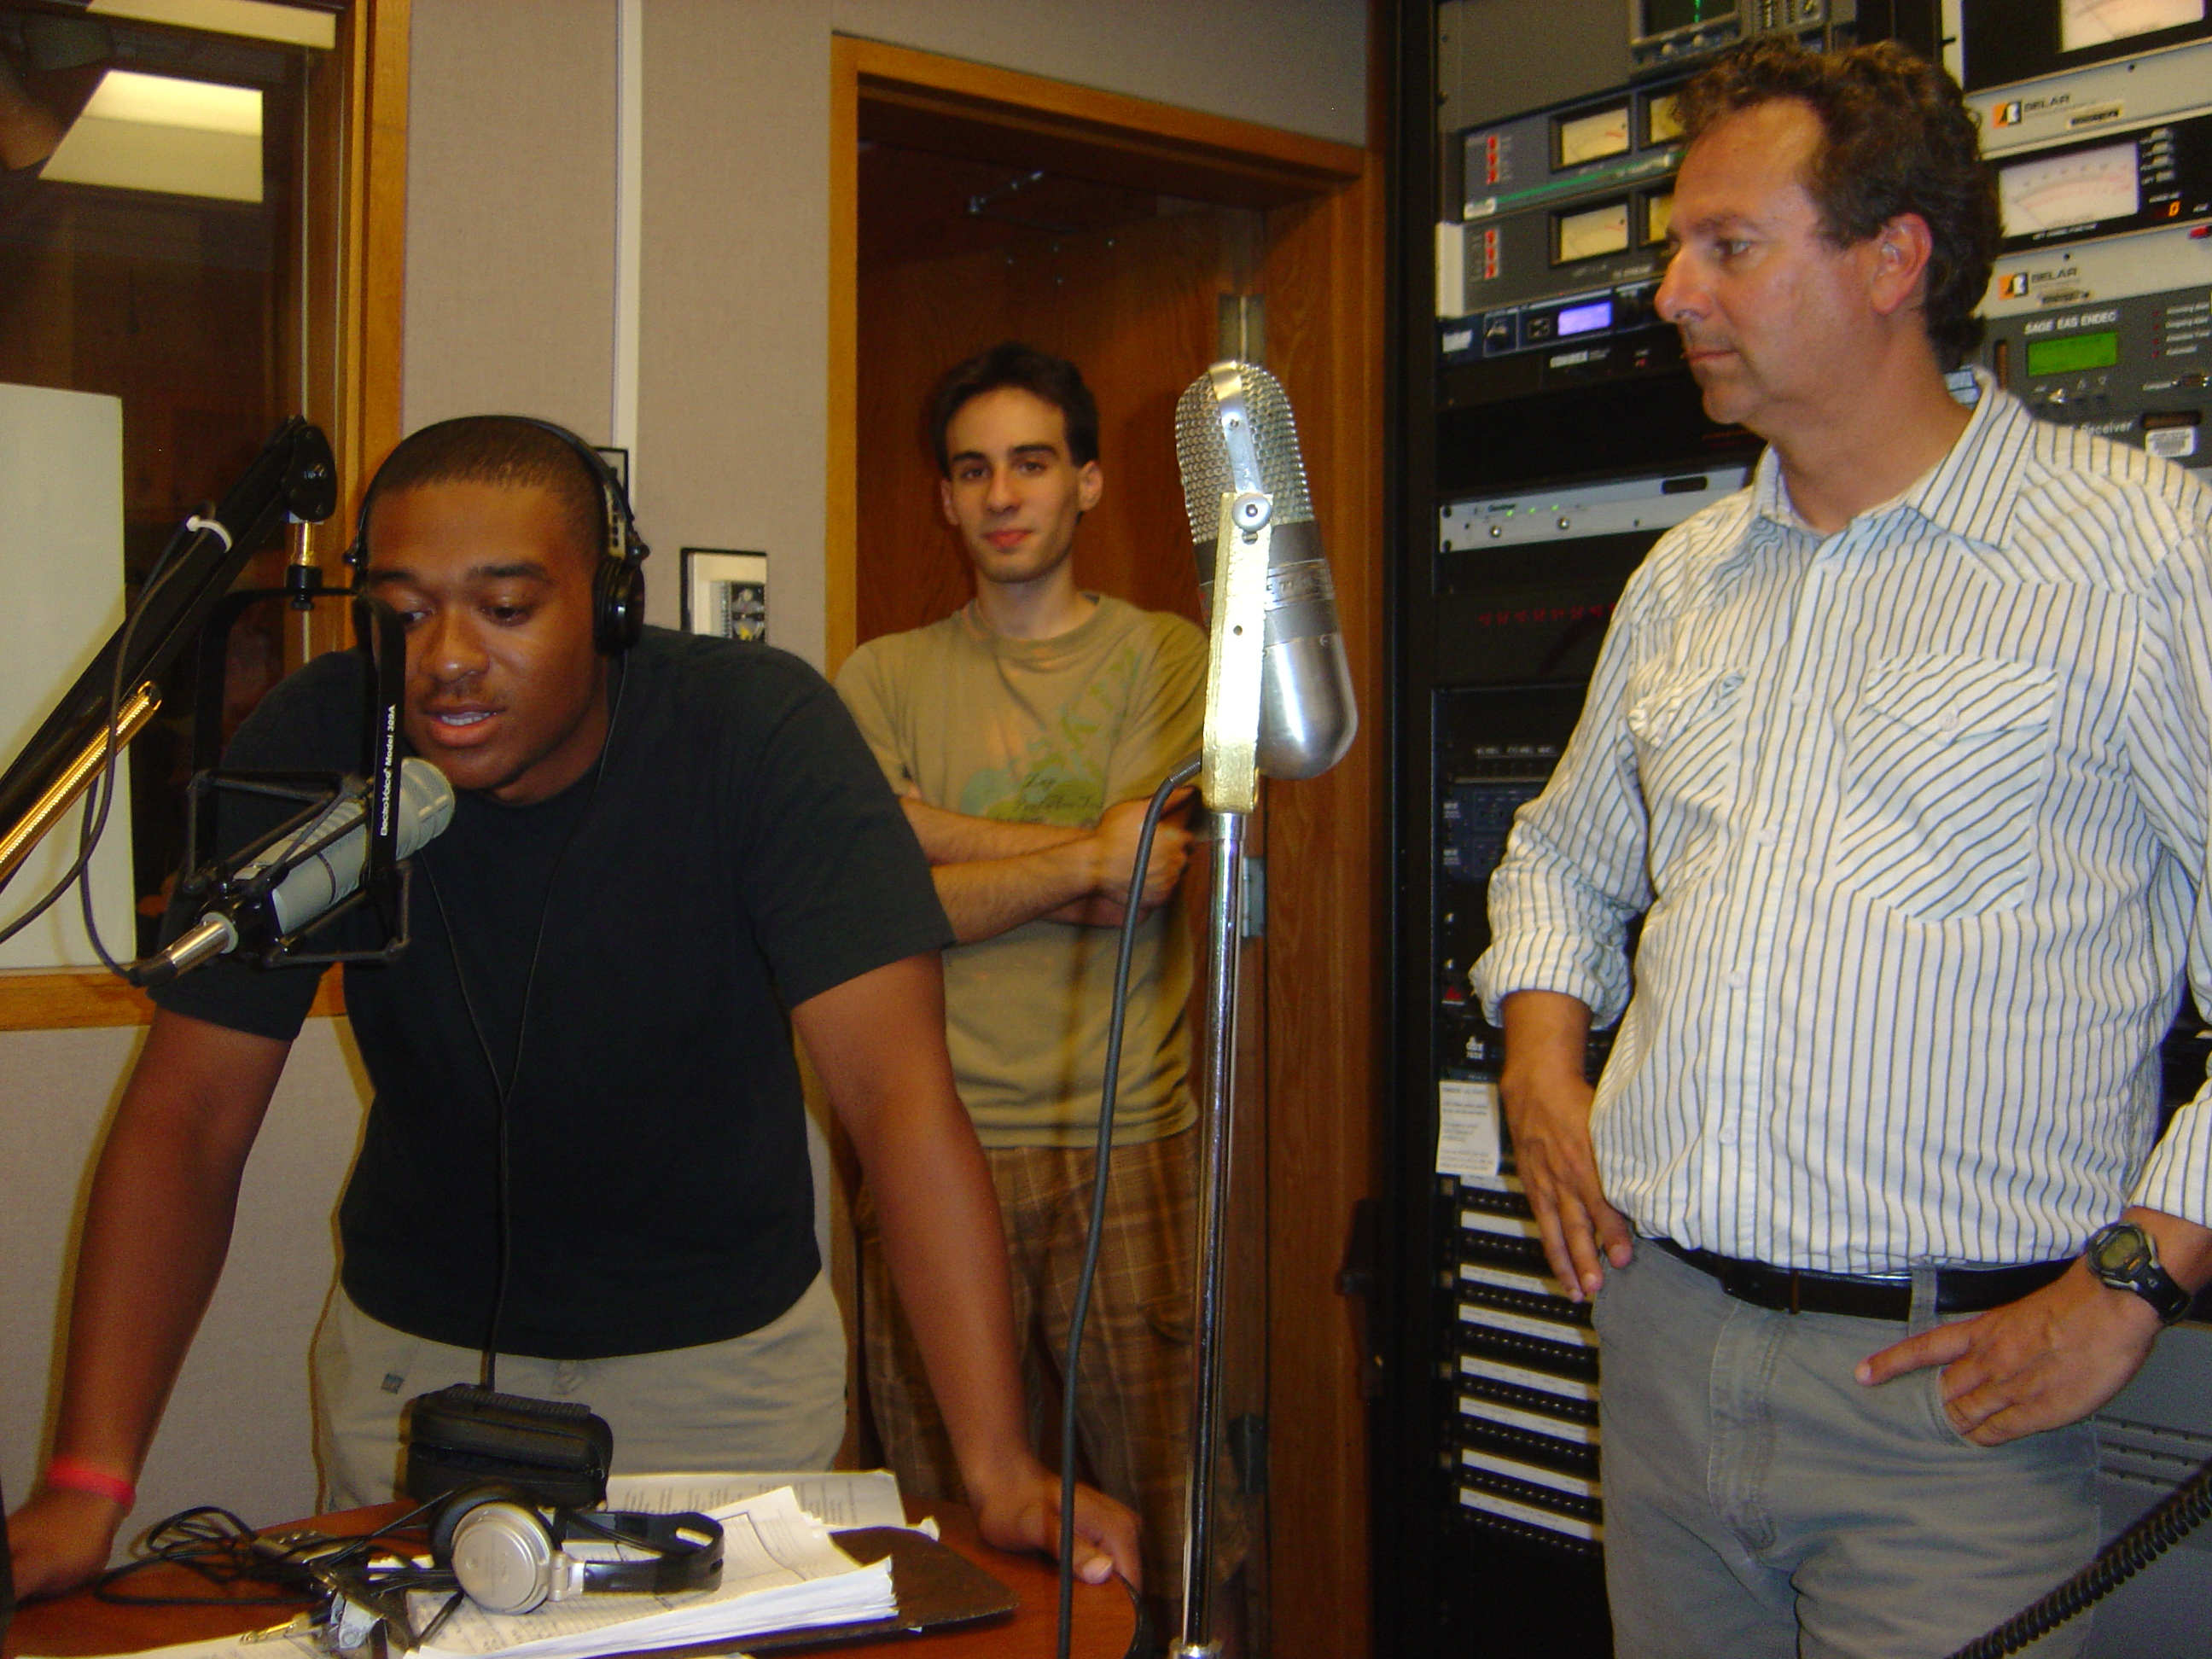 The First Broadcast from the Rebuilt FM Control 2009